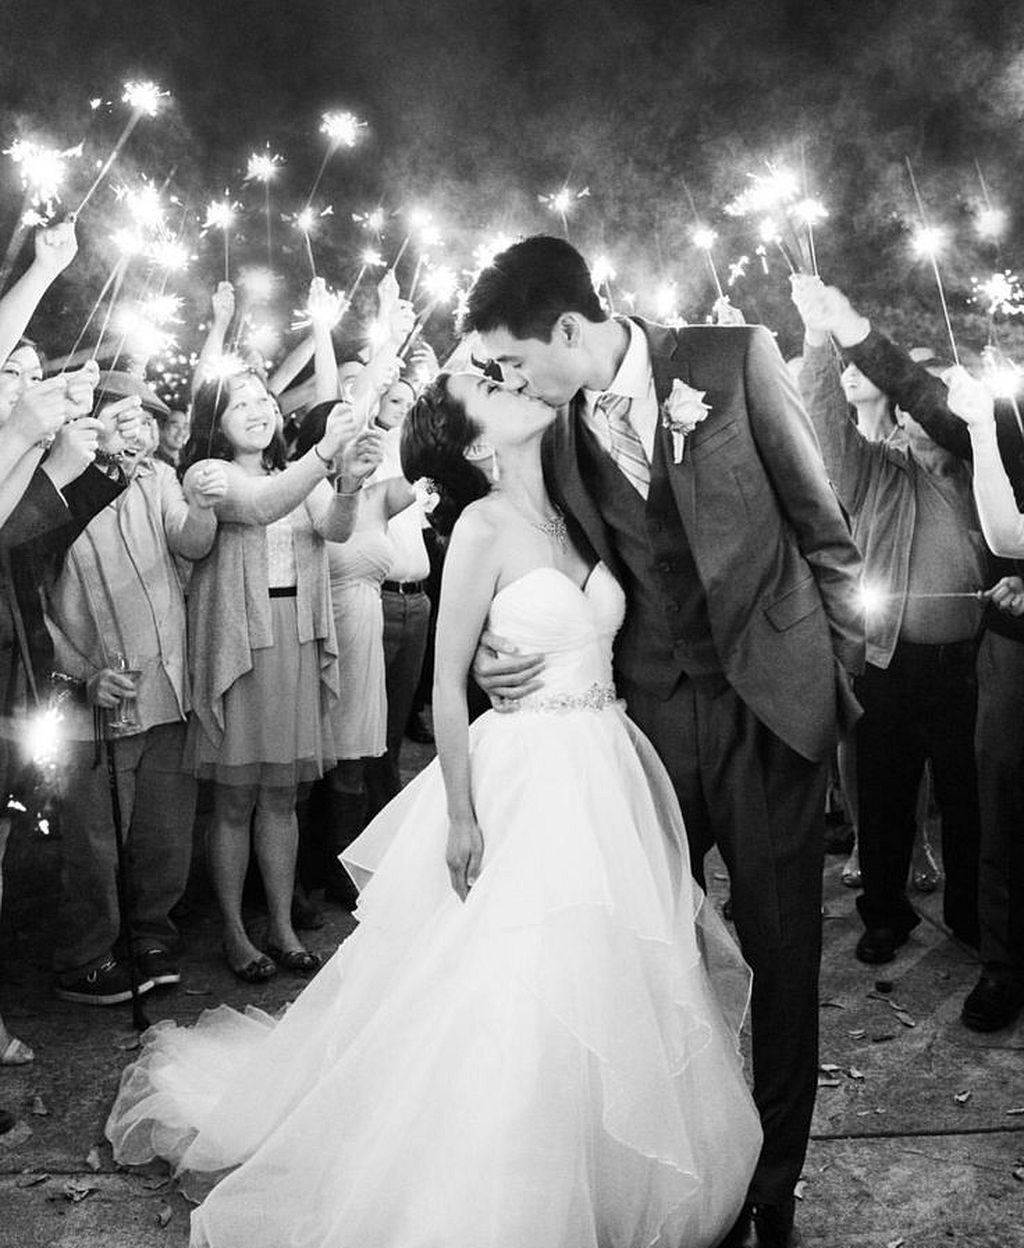 find your perfect sparkler photo wedding ideas